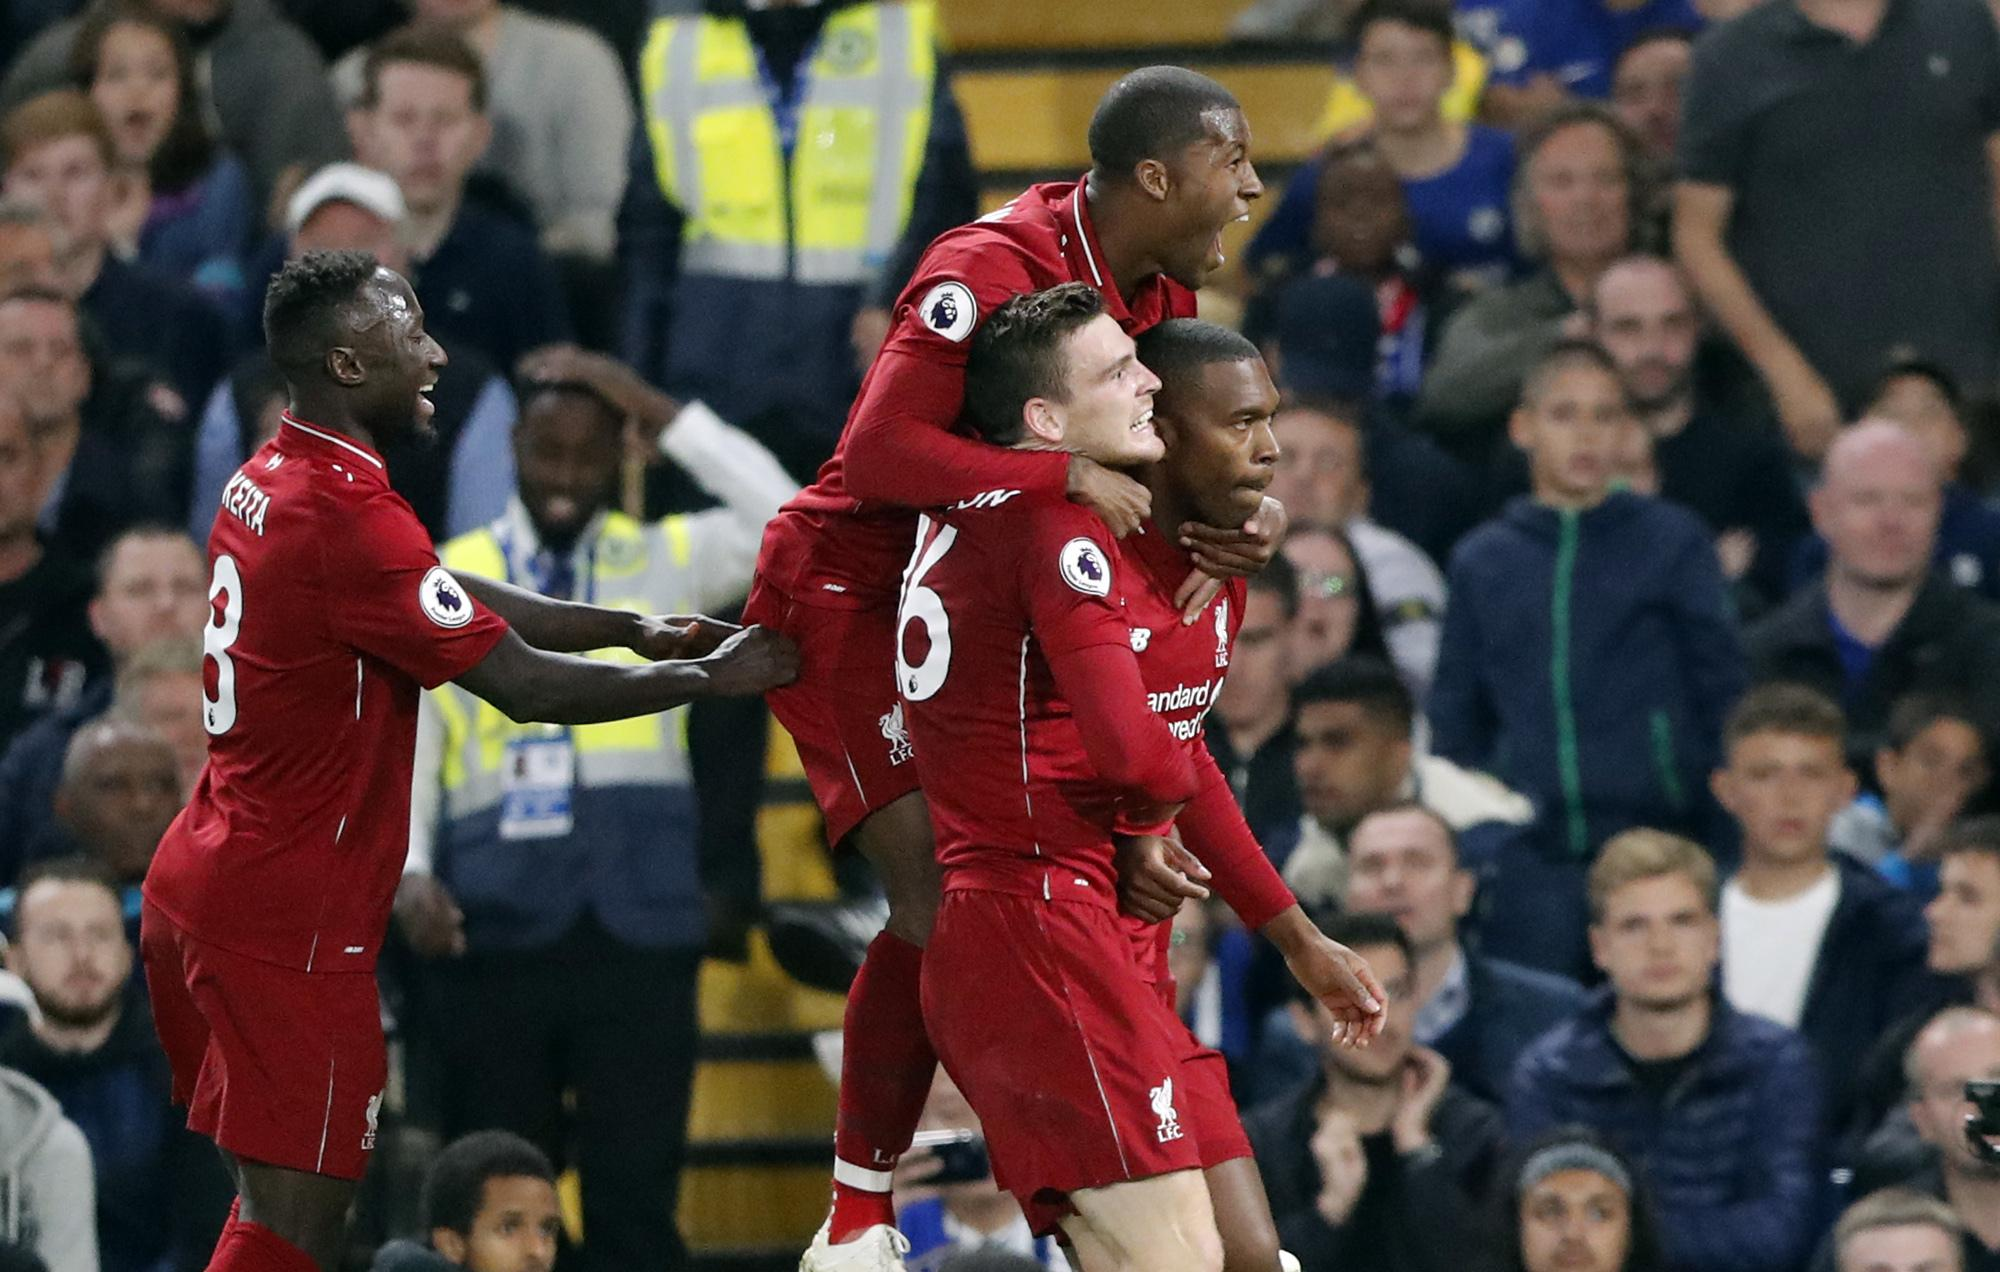 Daniel Sturridge scored a 90th-minute worldie to salvage a draw for Liverpool